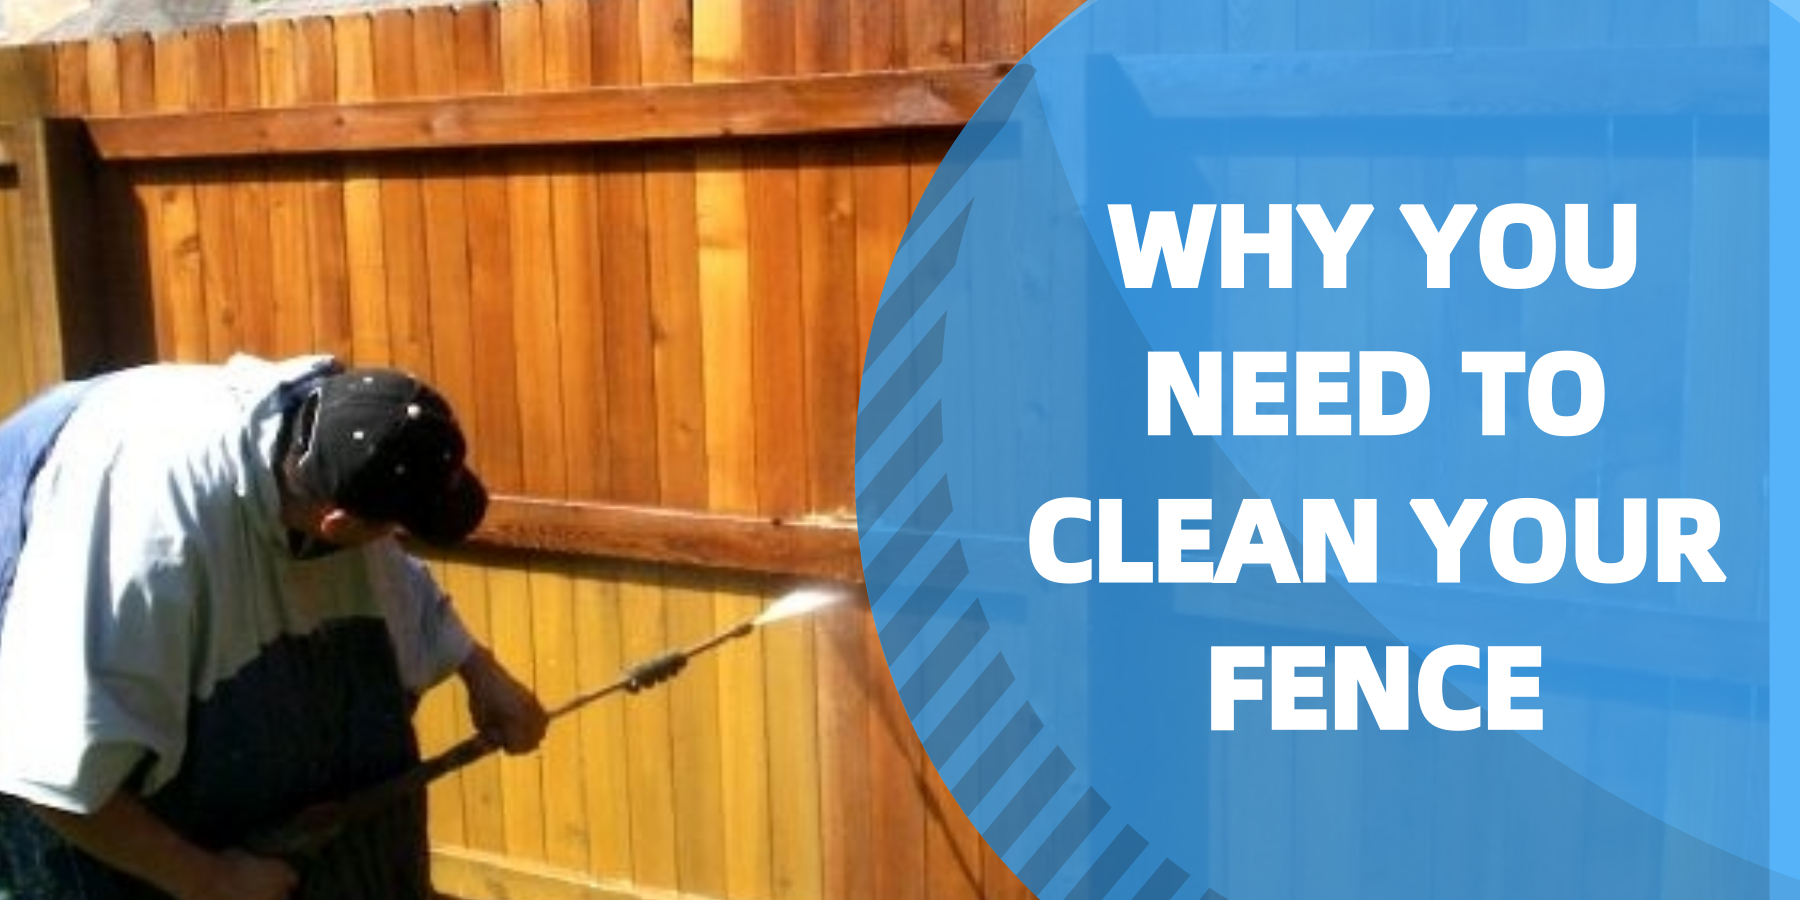 Learn more about why you need to clean your fence